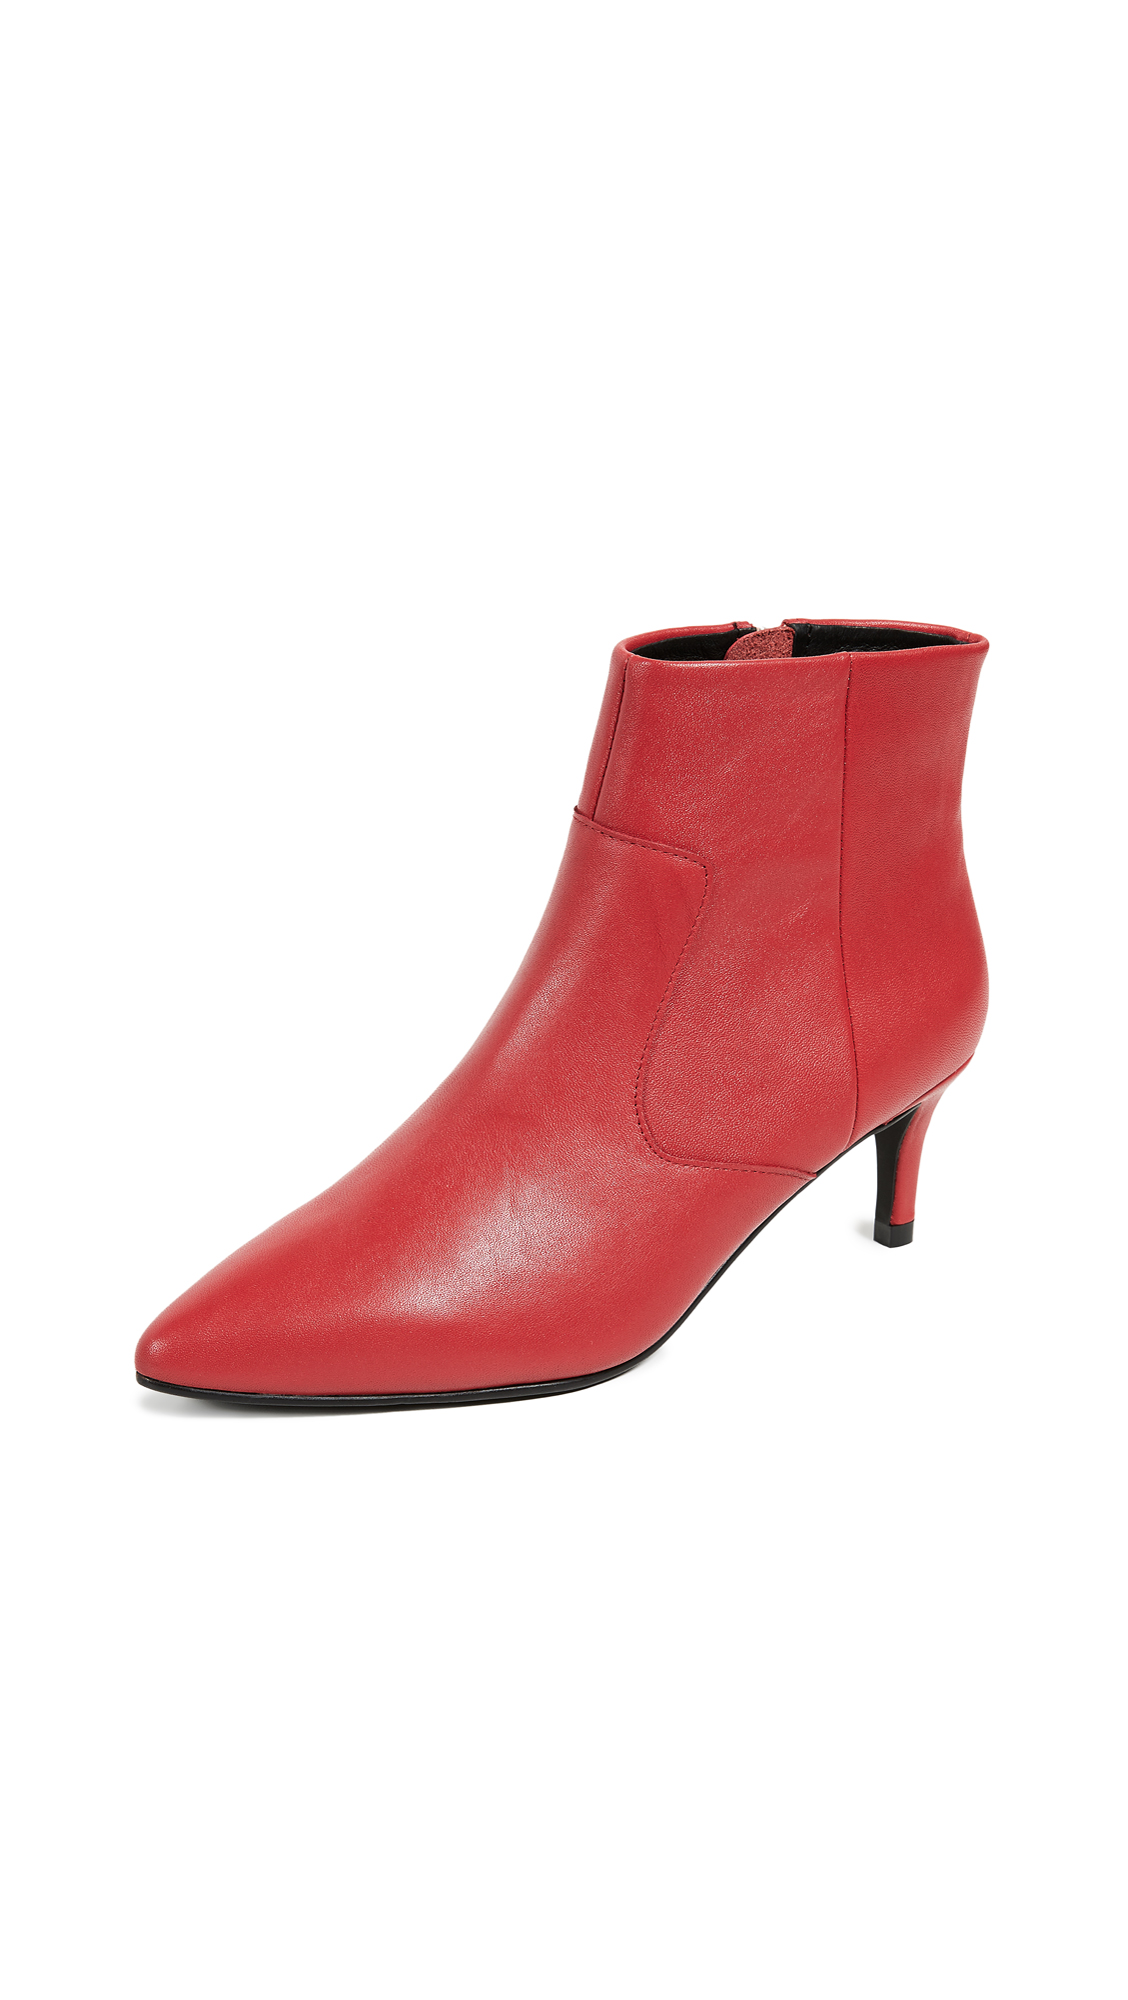 Sol Sana Odin Kitten Heel Booties - Red